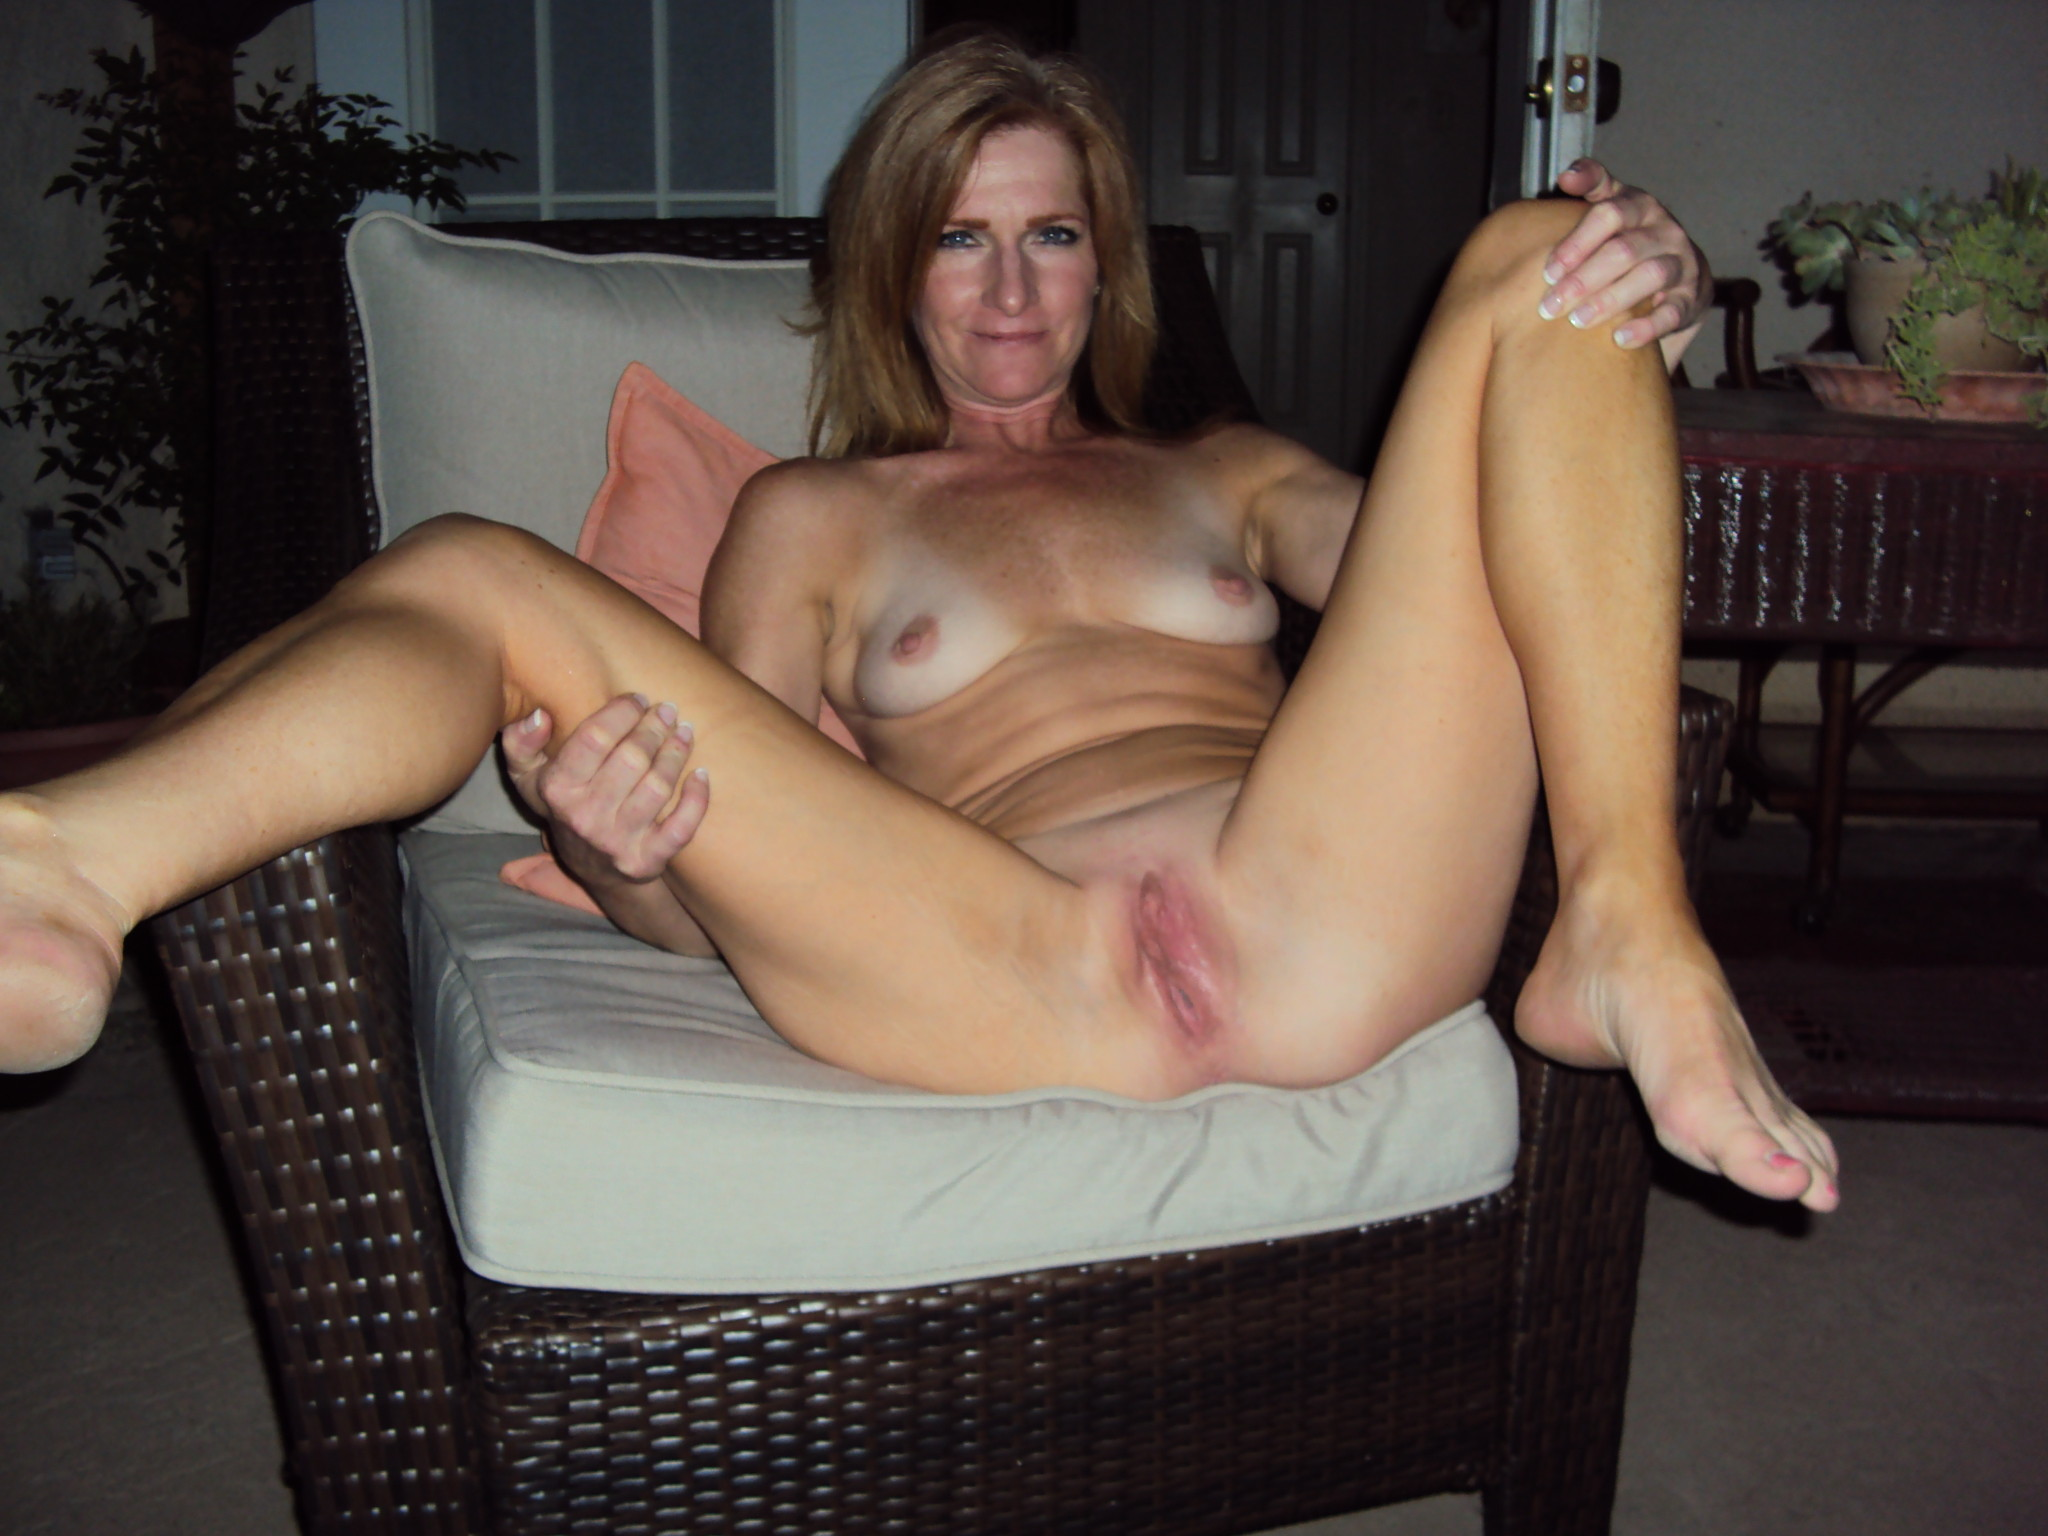 Nude Wife Gallery Amateur Porn Naked Milf Wife Photo